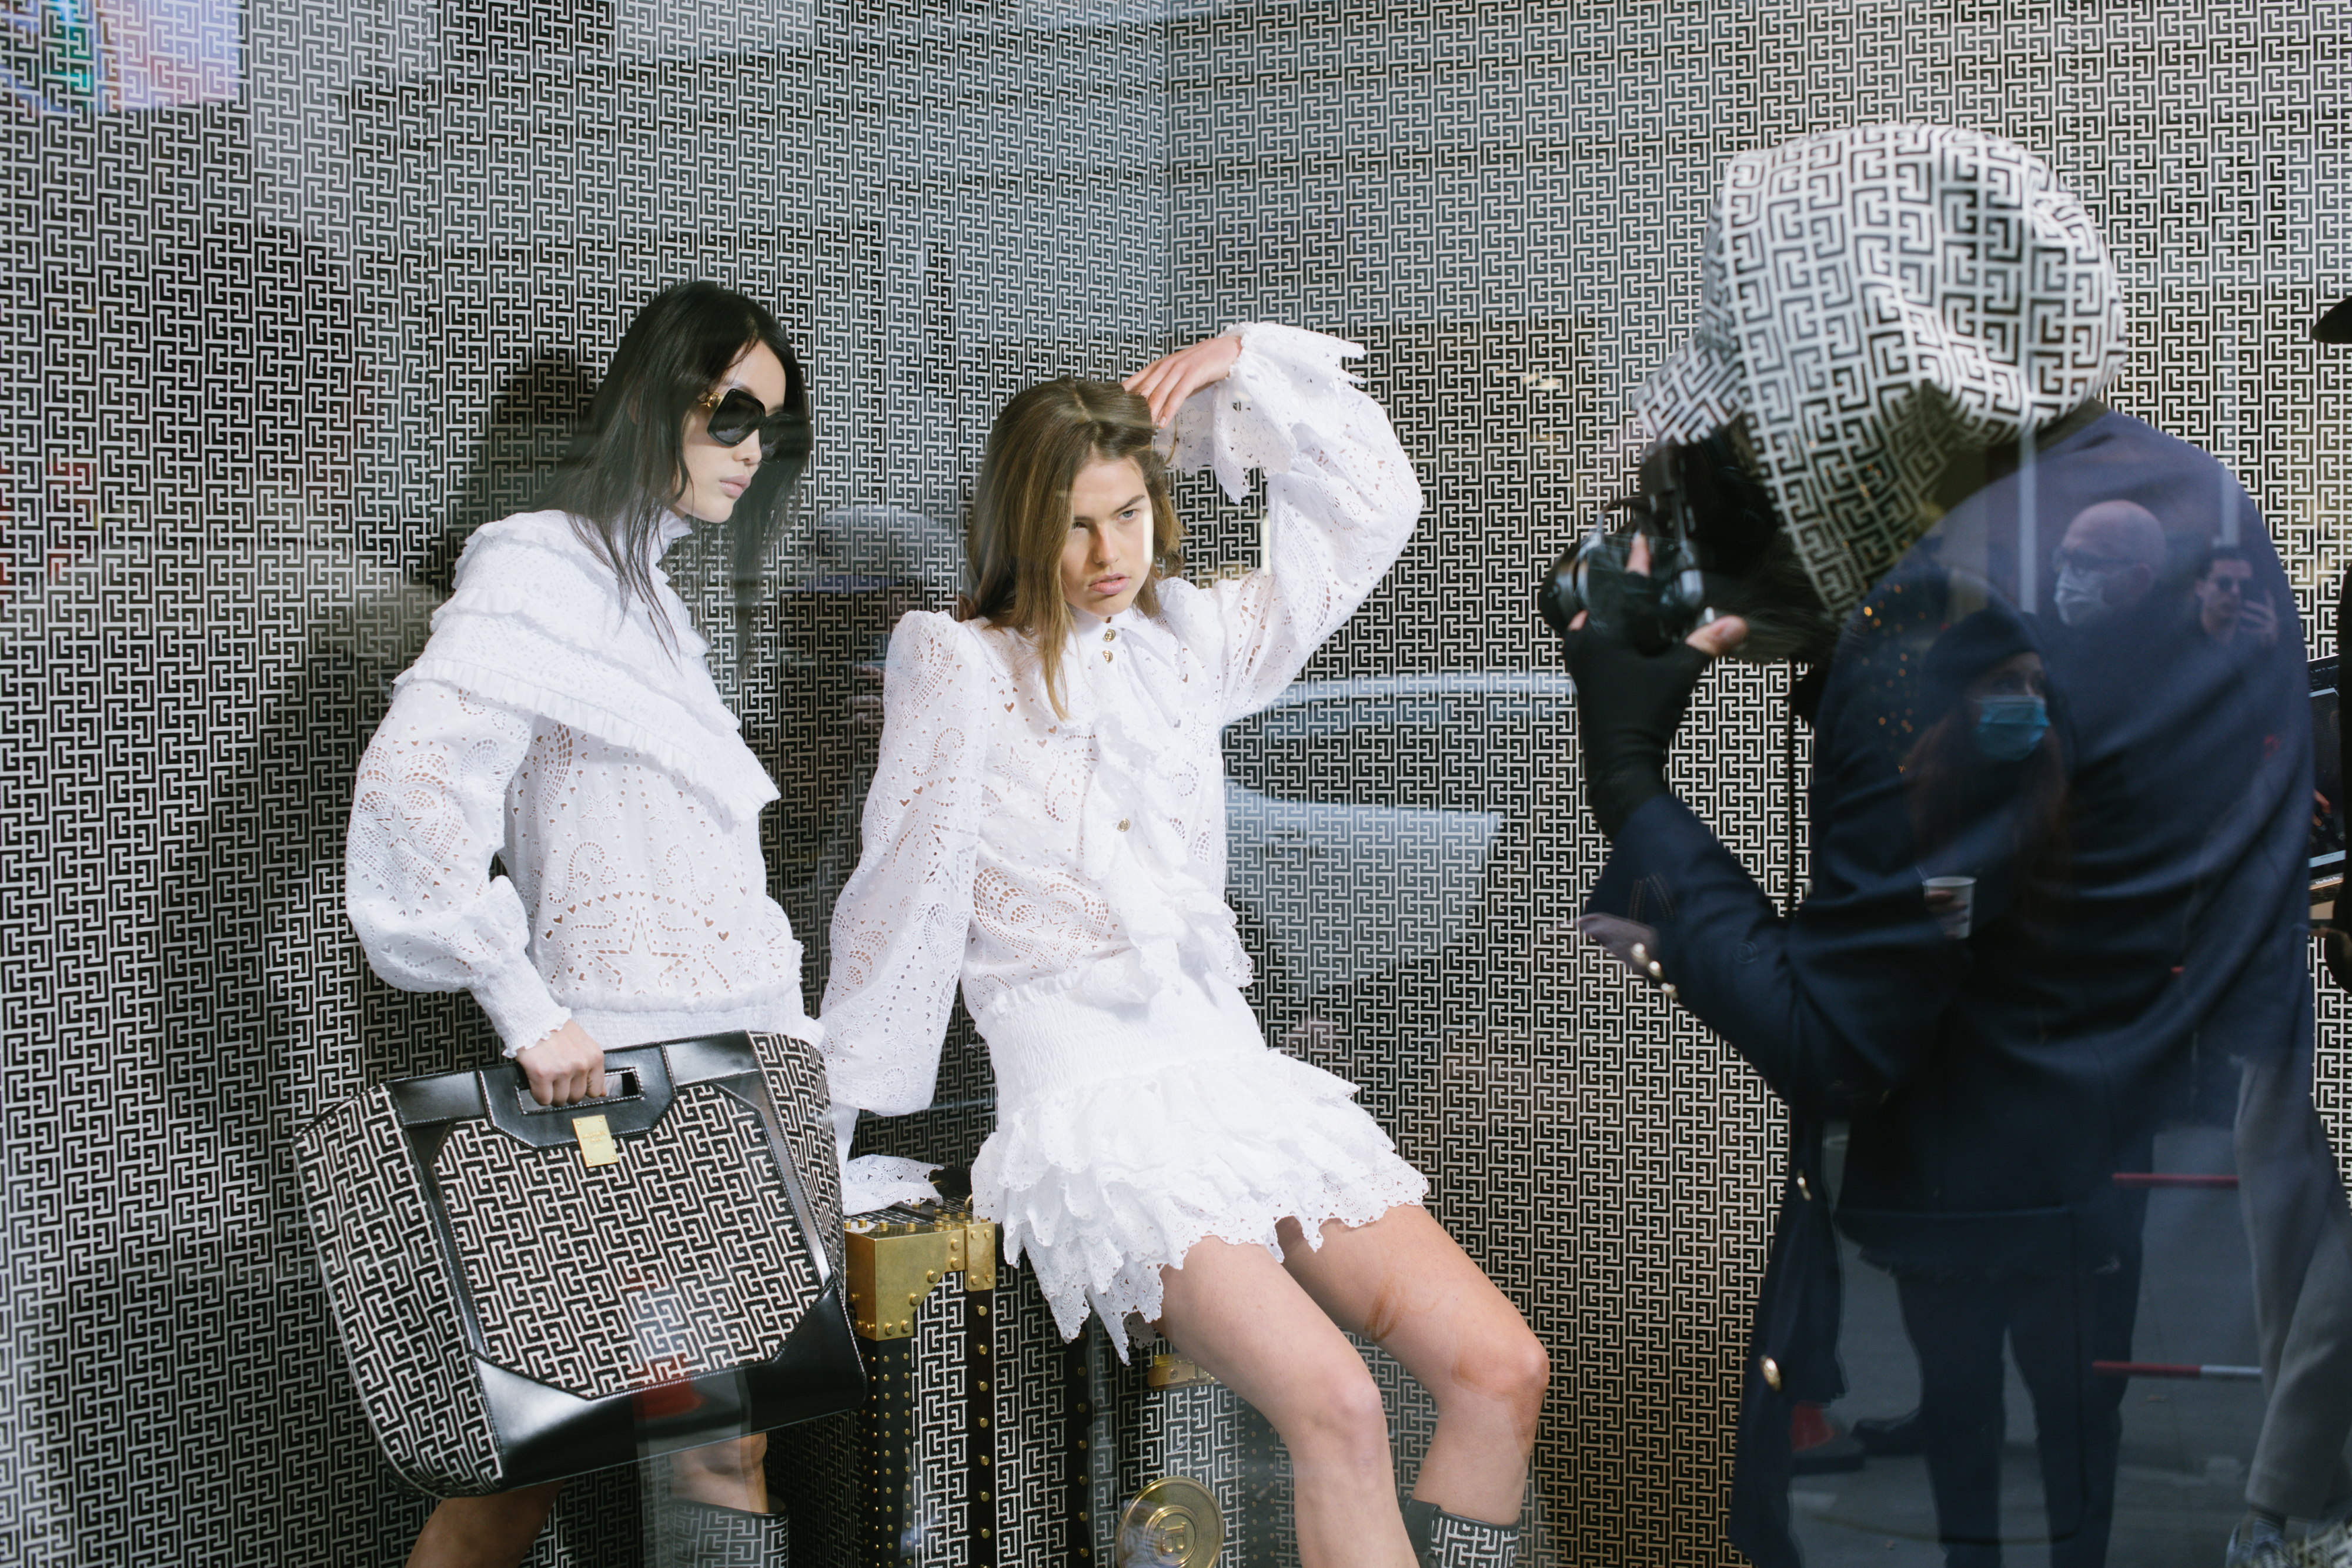 Olivier Rousteing shooting Balmain Pre-Fall 2021 collection in the windows of its Rue Saint-Honoré boutique.